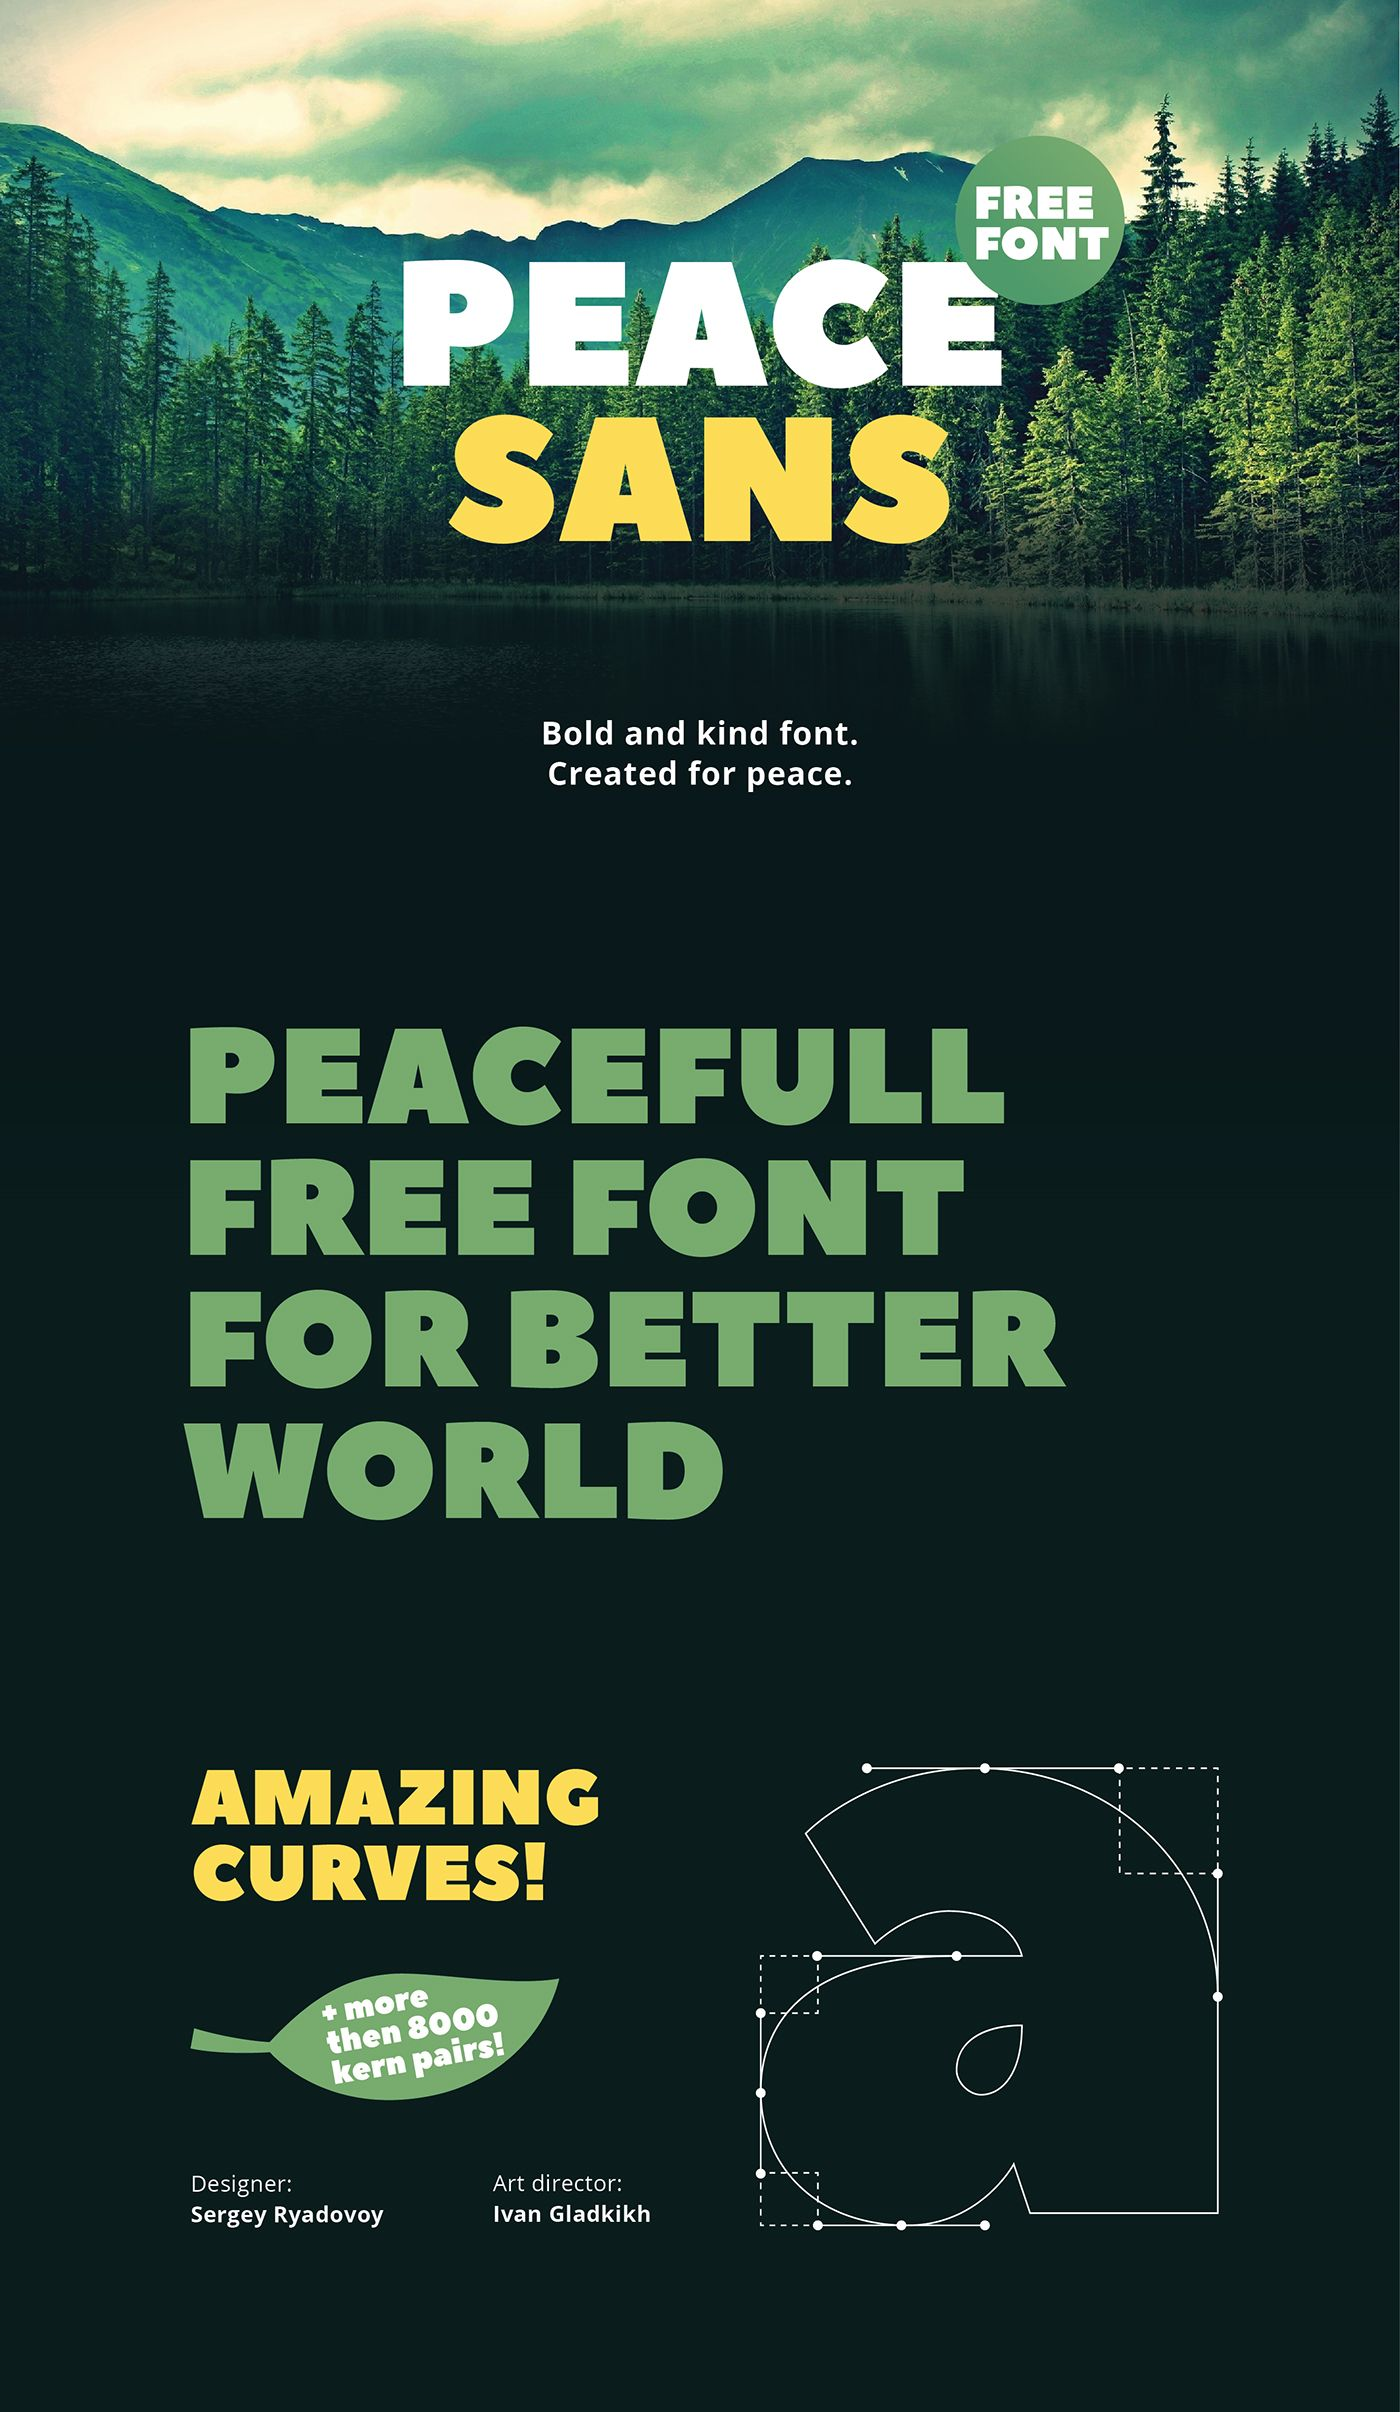 Free Font Friday: Peace Sans by Sergey Ryadovoy | Typeface & Font